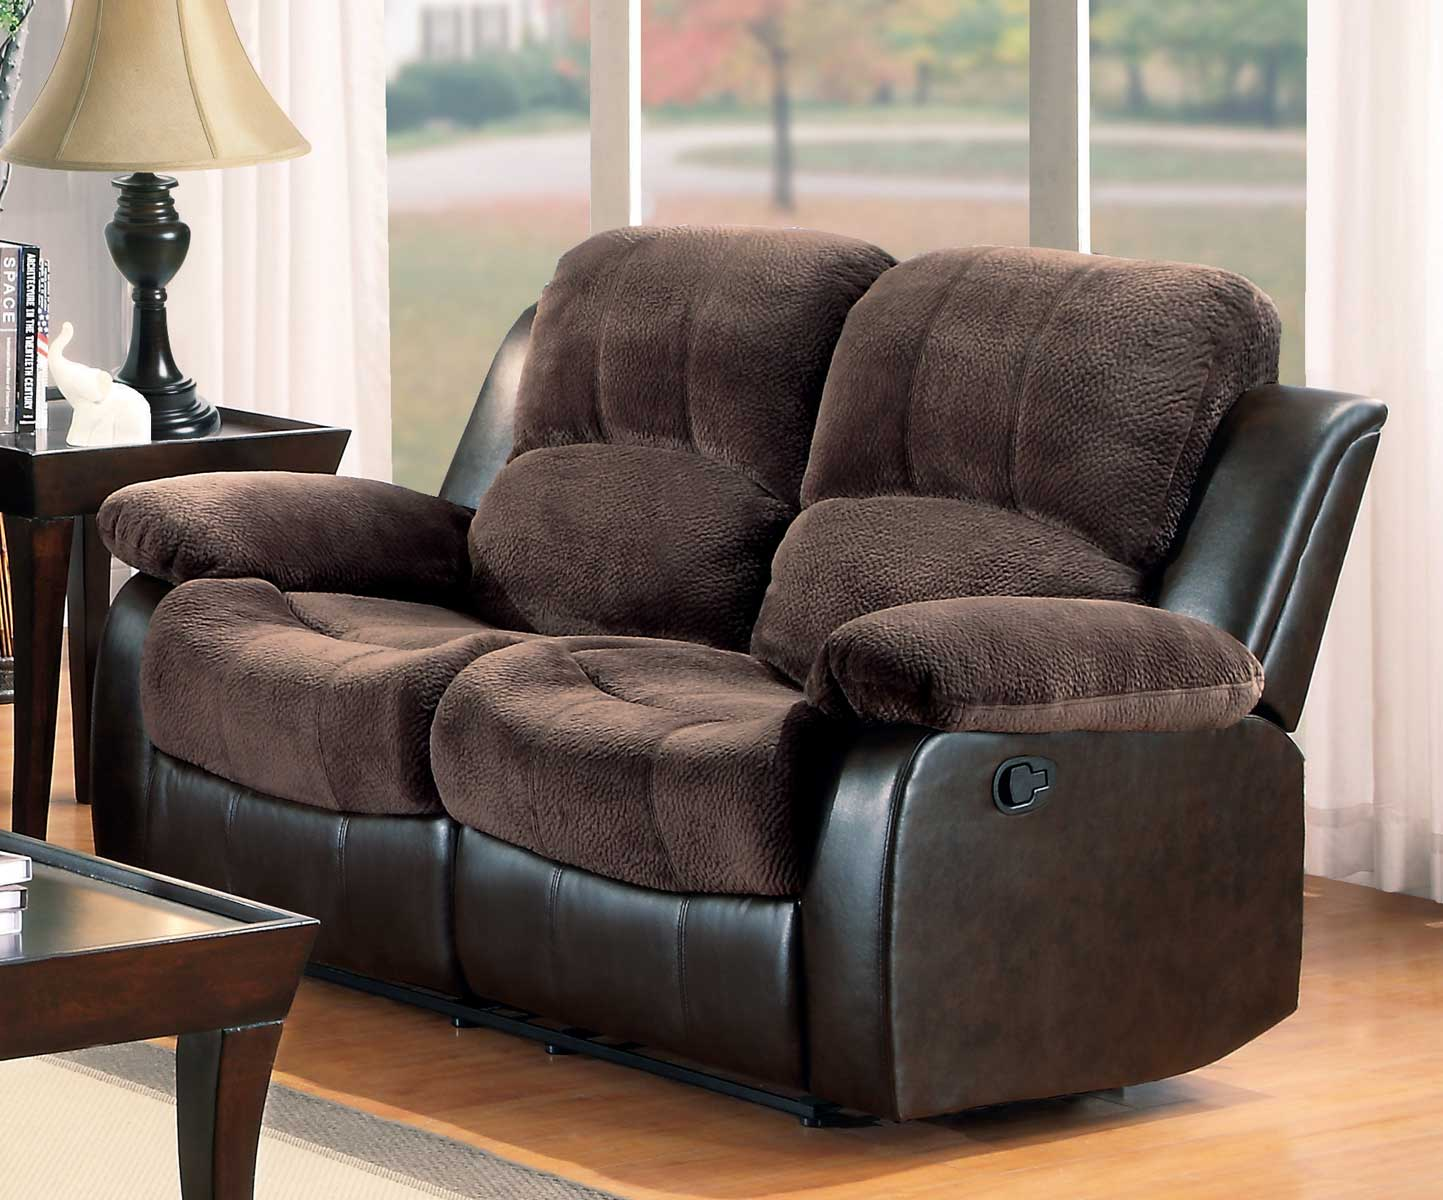 Homelegance Cranley Love Seat Dual Recliner Chocolate Textured Plush Microfiber Bi Cast